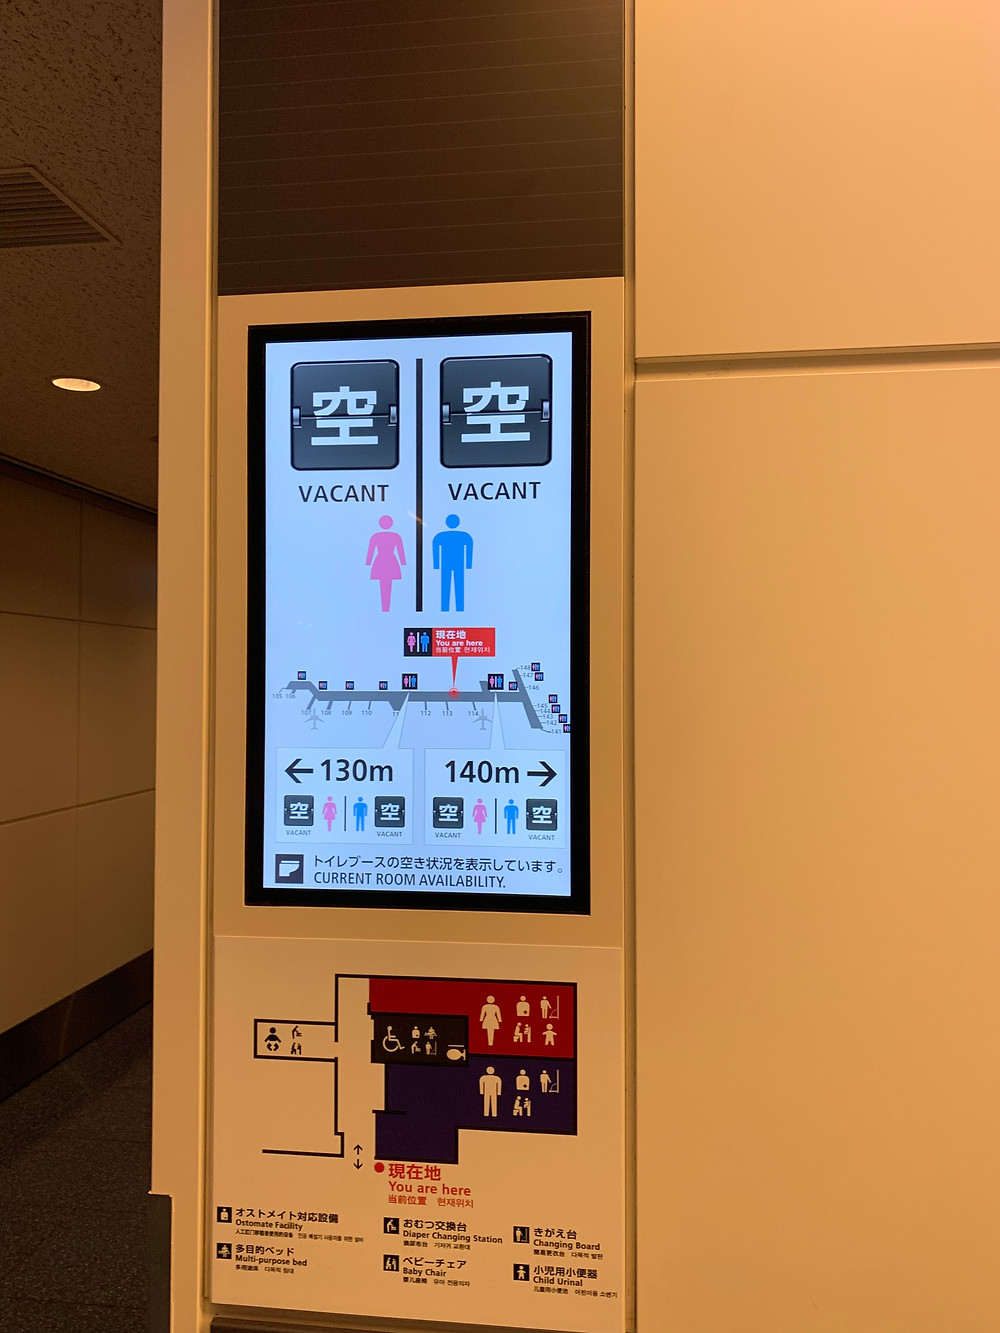 Information panel of restroon at Haneda airport